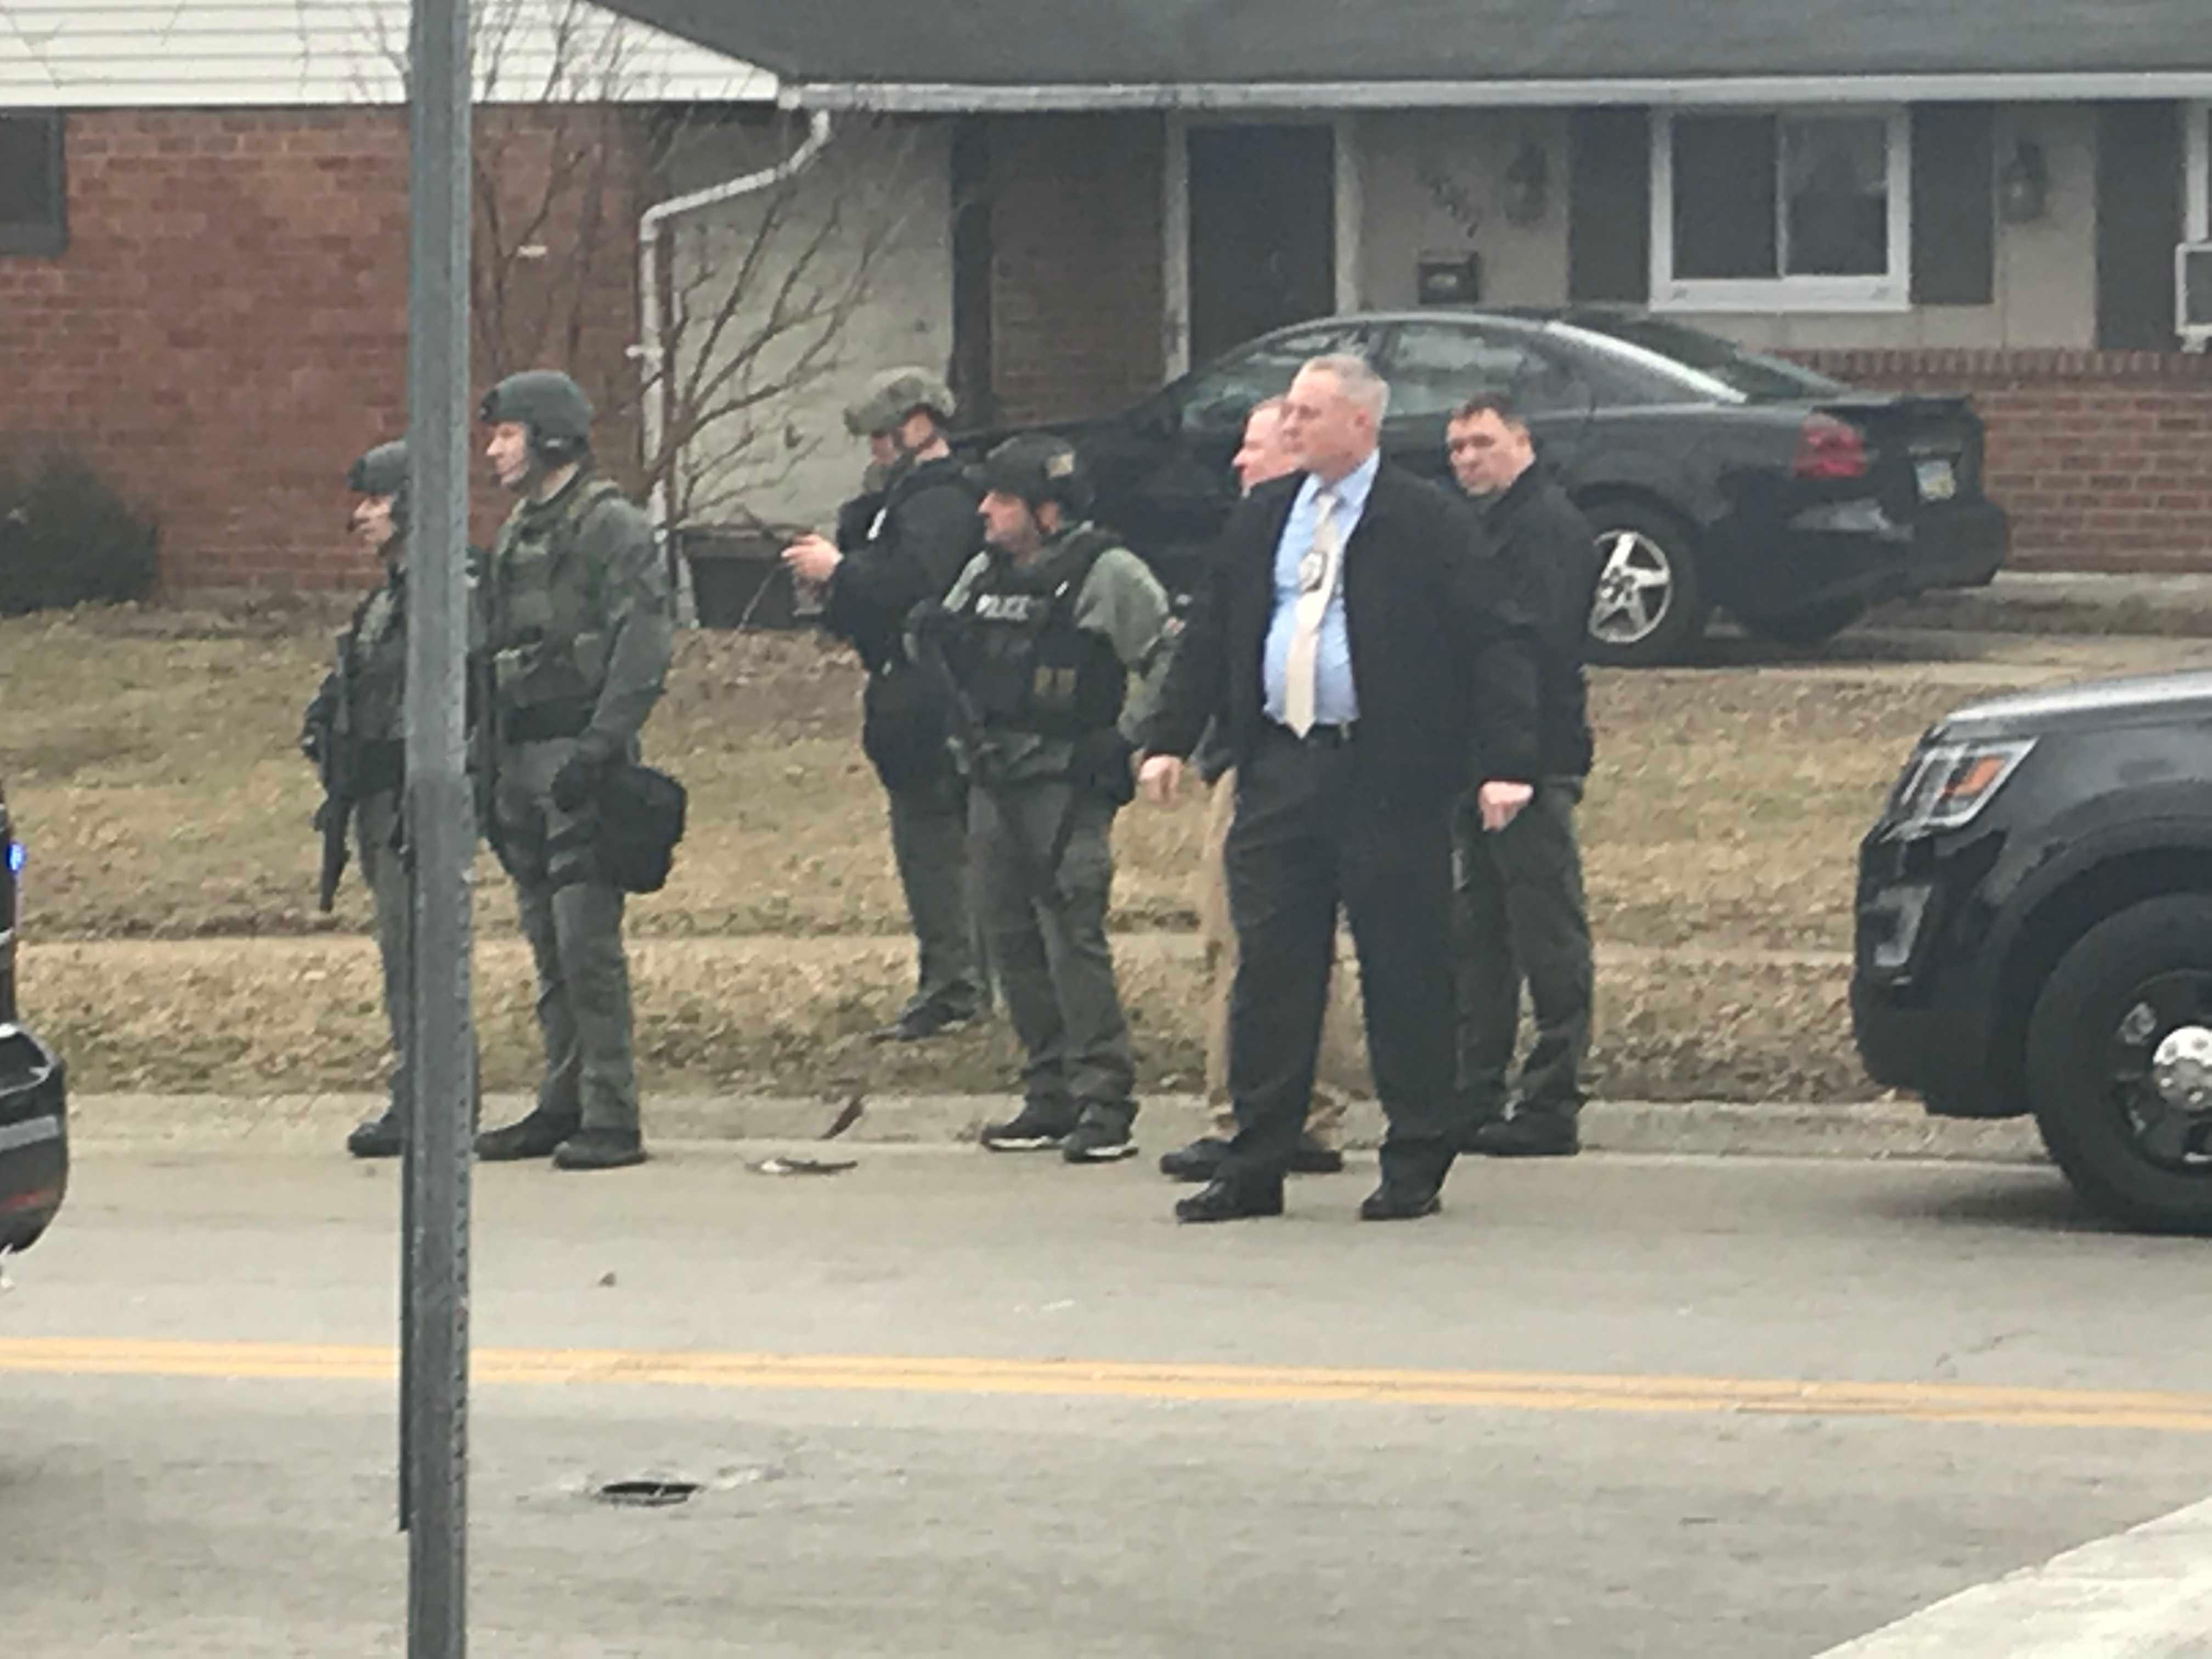 7 in custody after armed robbery at Huber Heights AT&T store (WKEF/WRGT)